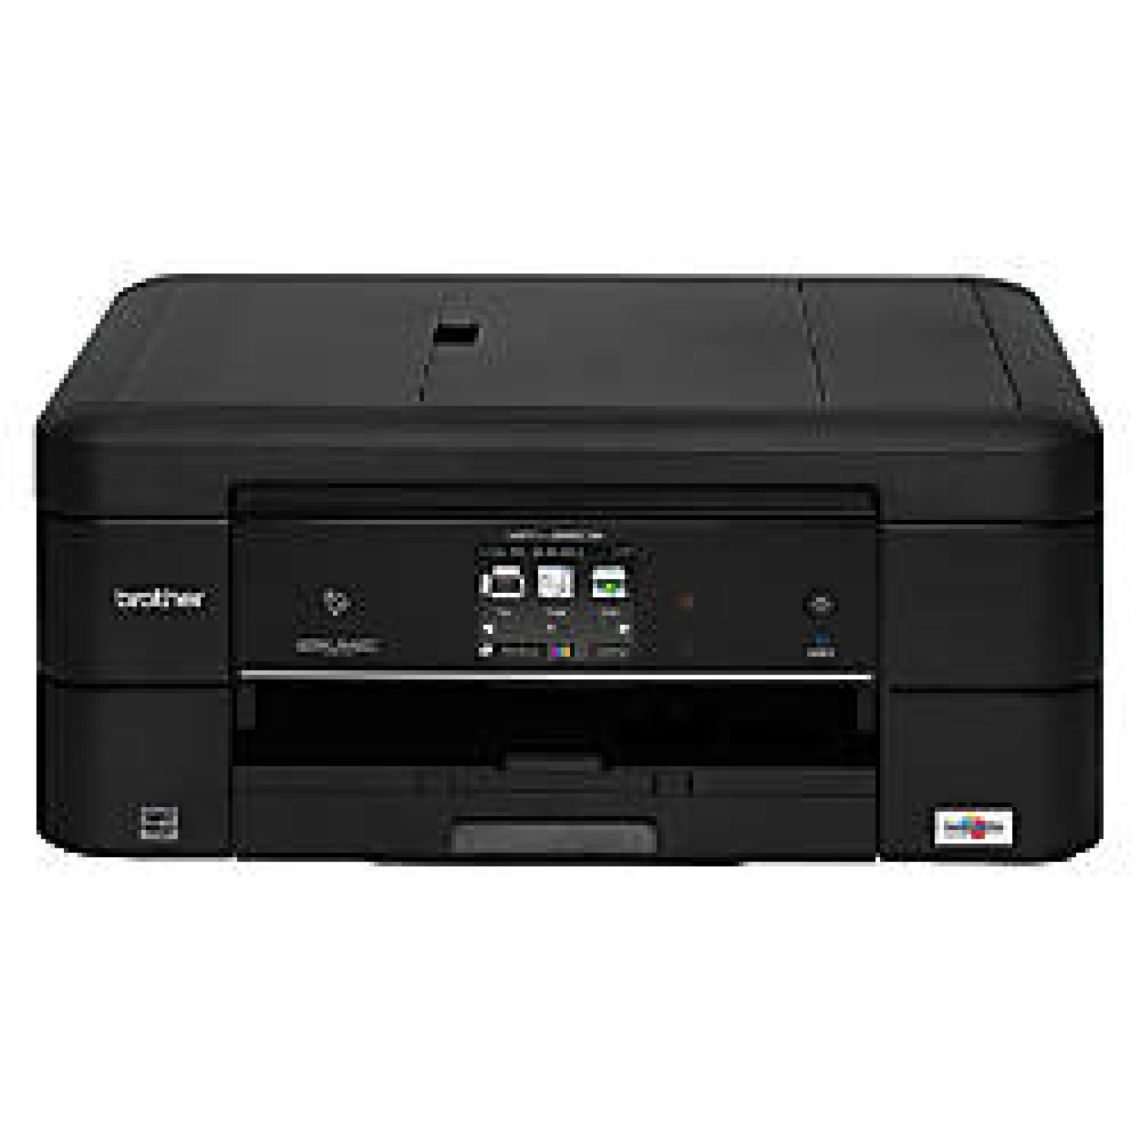 Brother Wireless Color Inkjet All In One Printer Scanner Copier And Fax MFC J885DW by Office Depot & OfficeMax